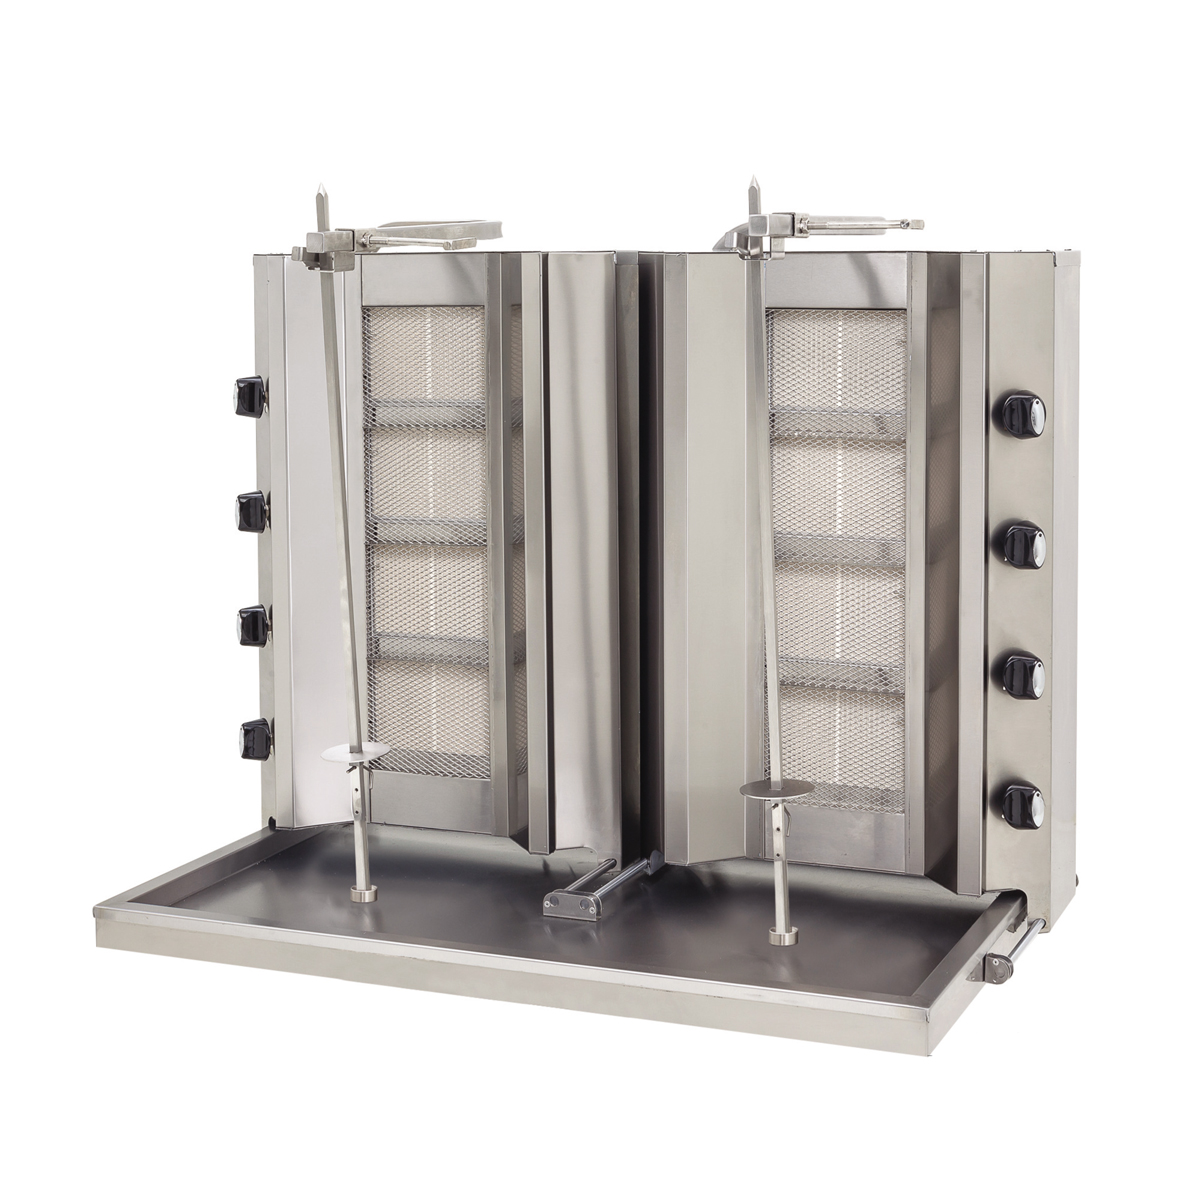 Doner Machine Double - Non Motor 8 Burner - Gas